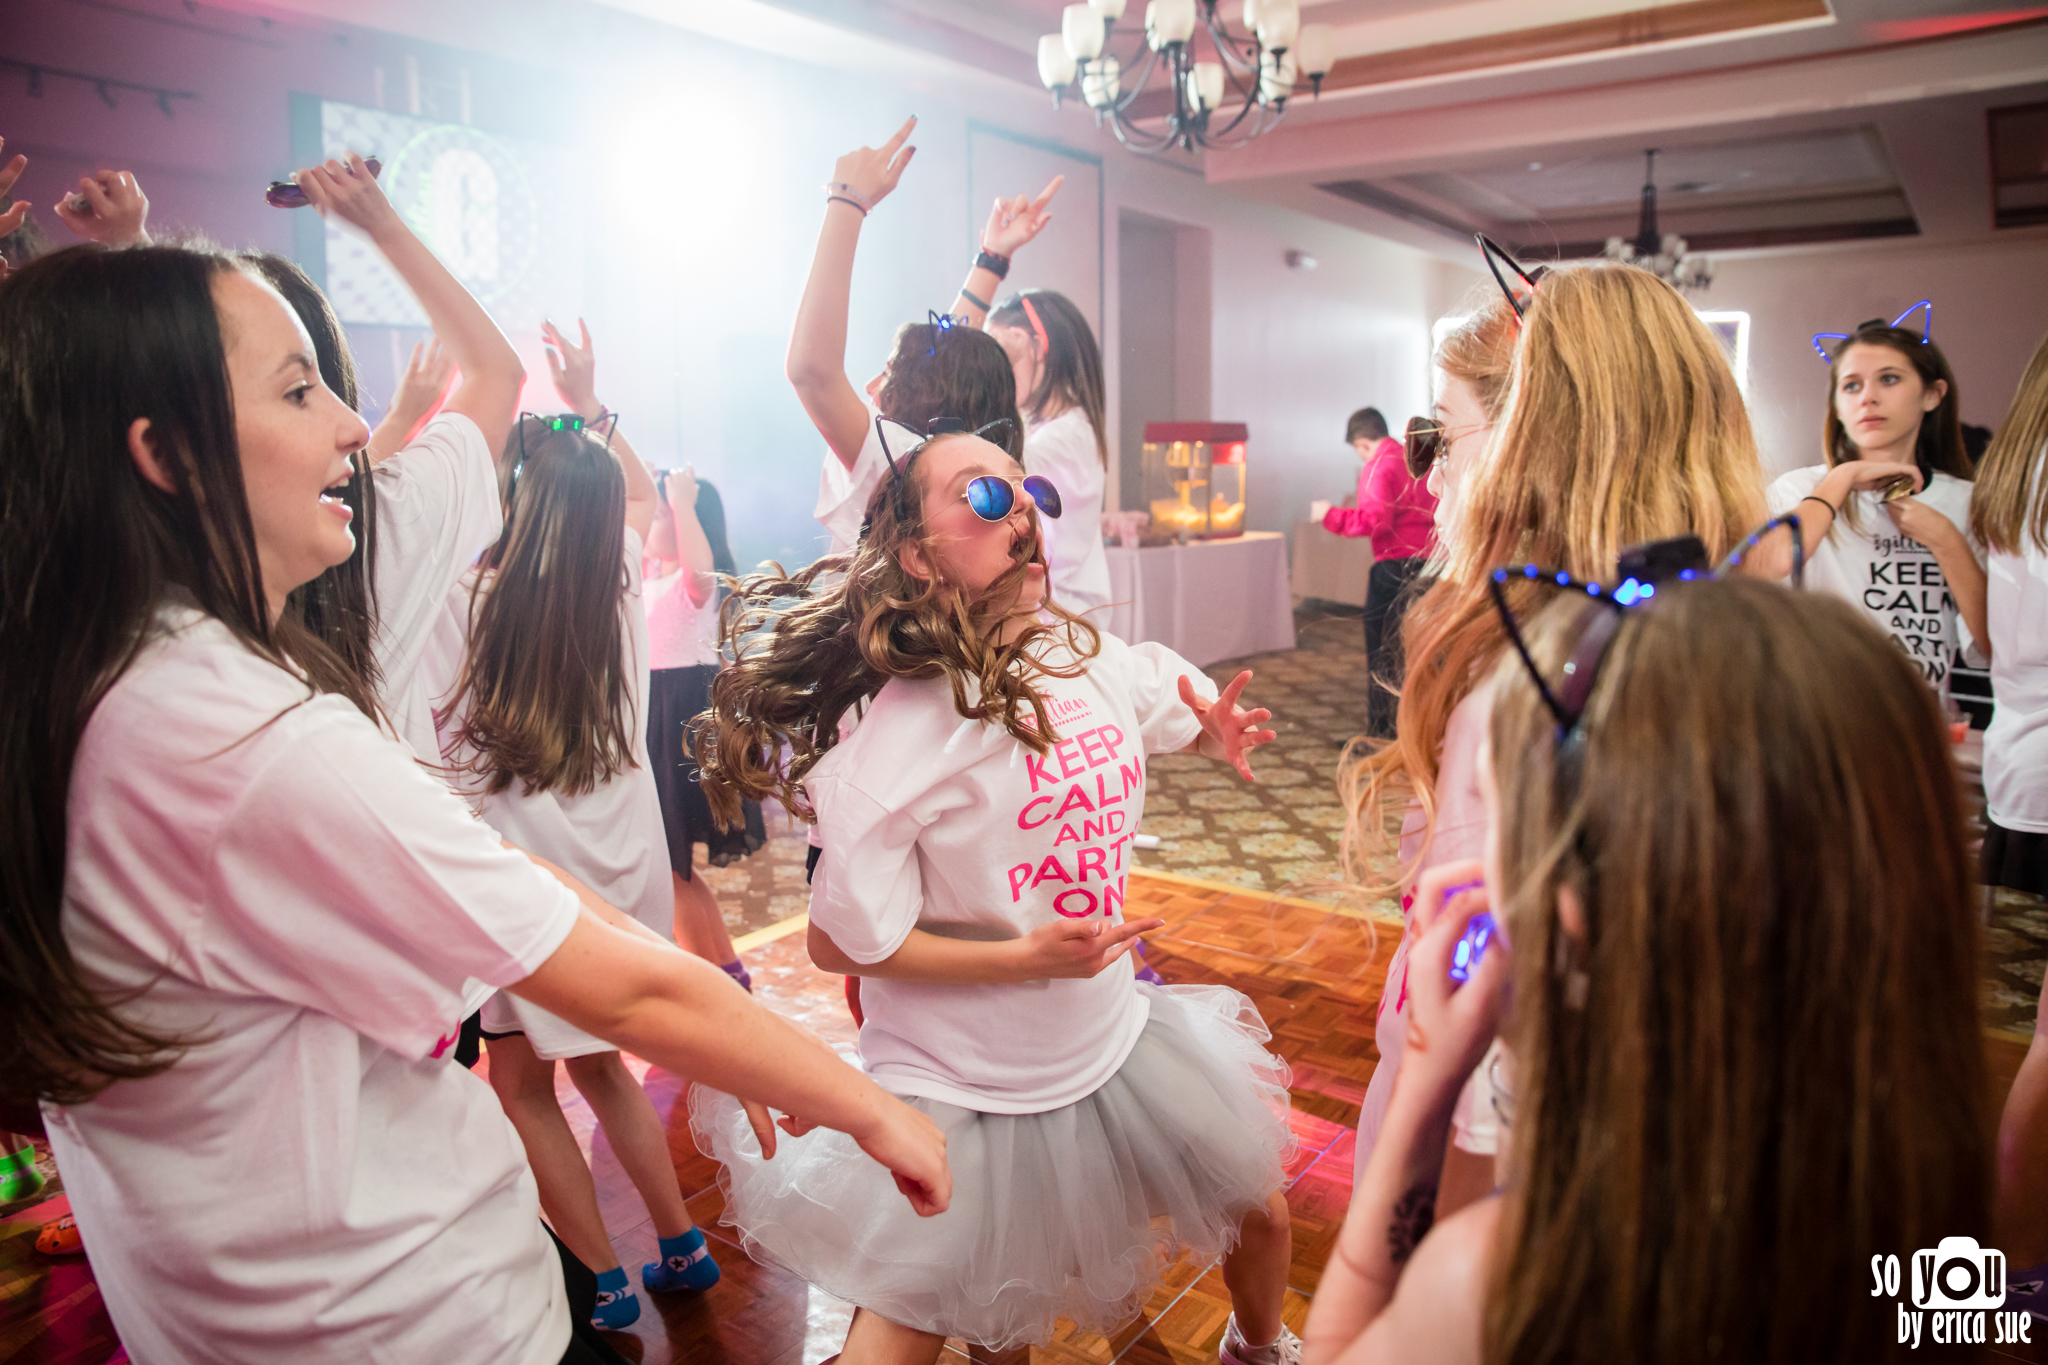 parkland-fl-mitzvah-photography-so-you-by-erica-sue-1777.jpg